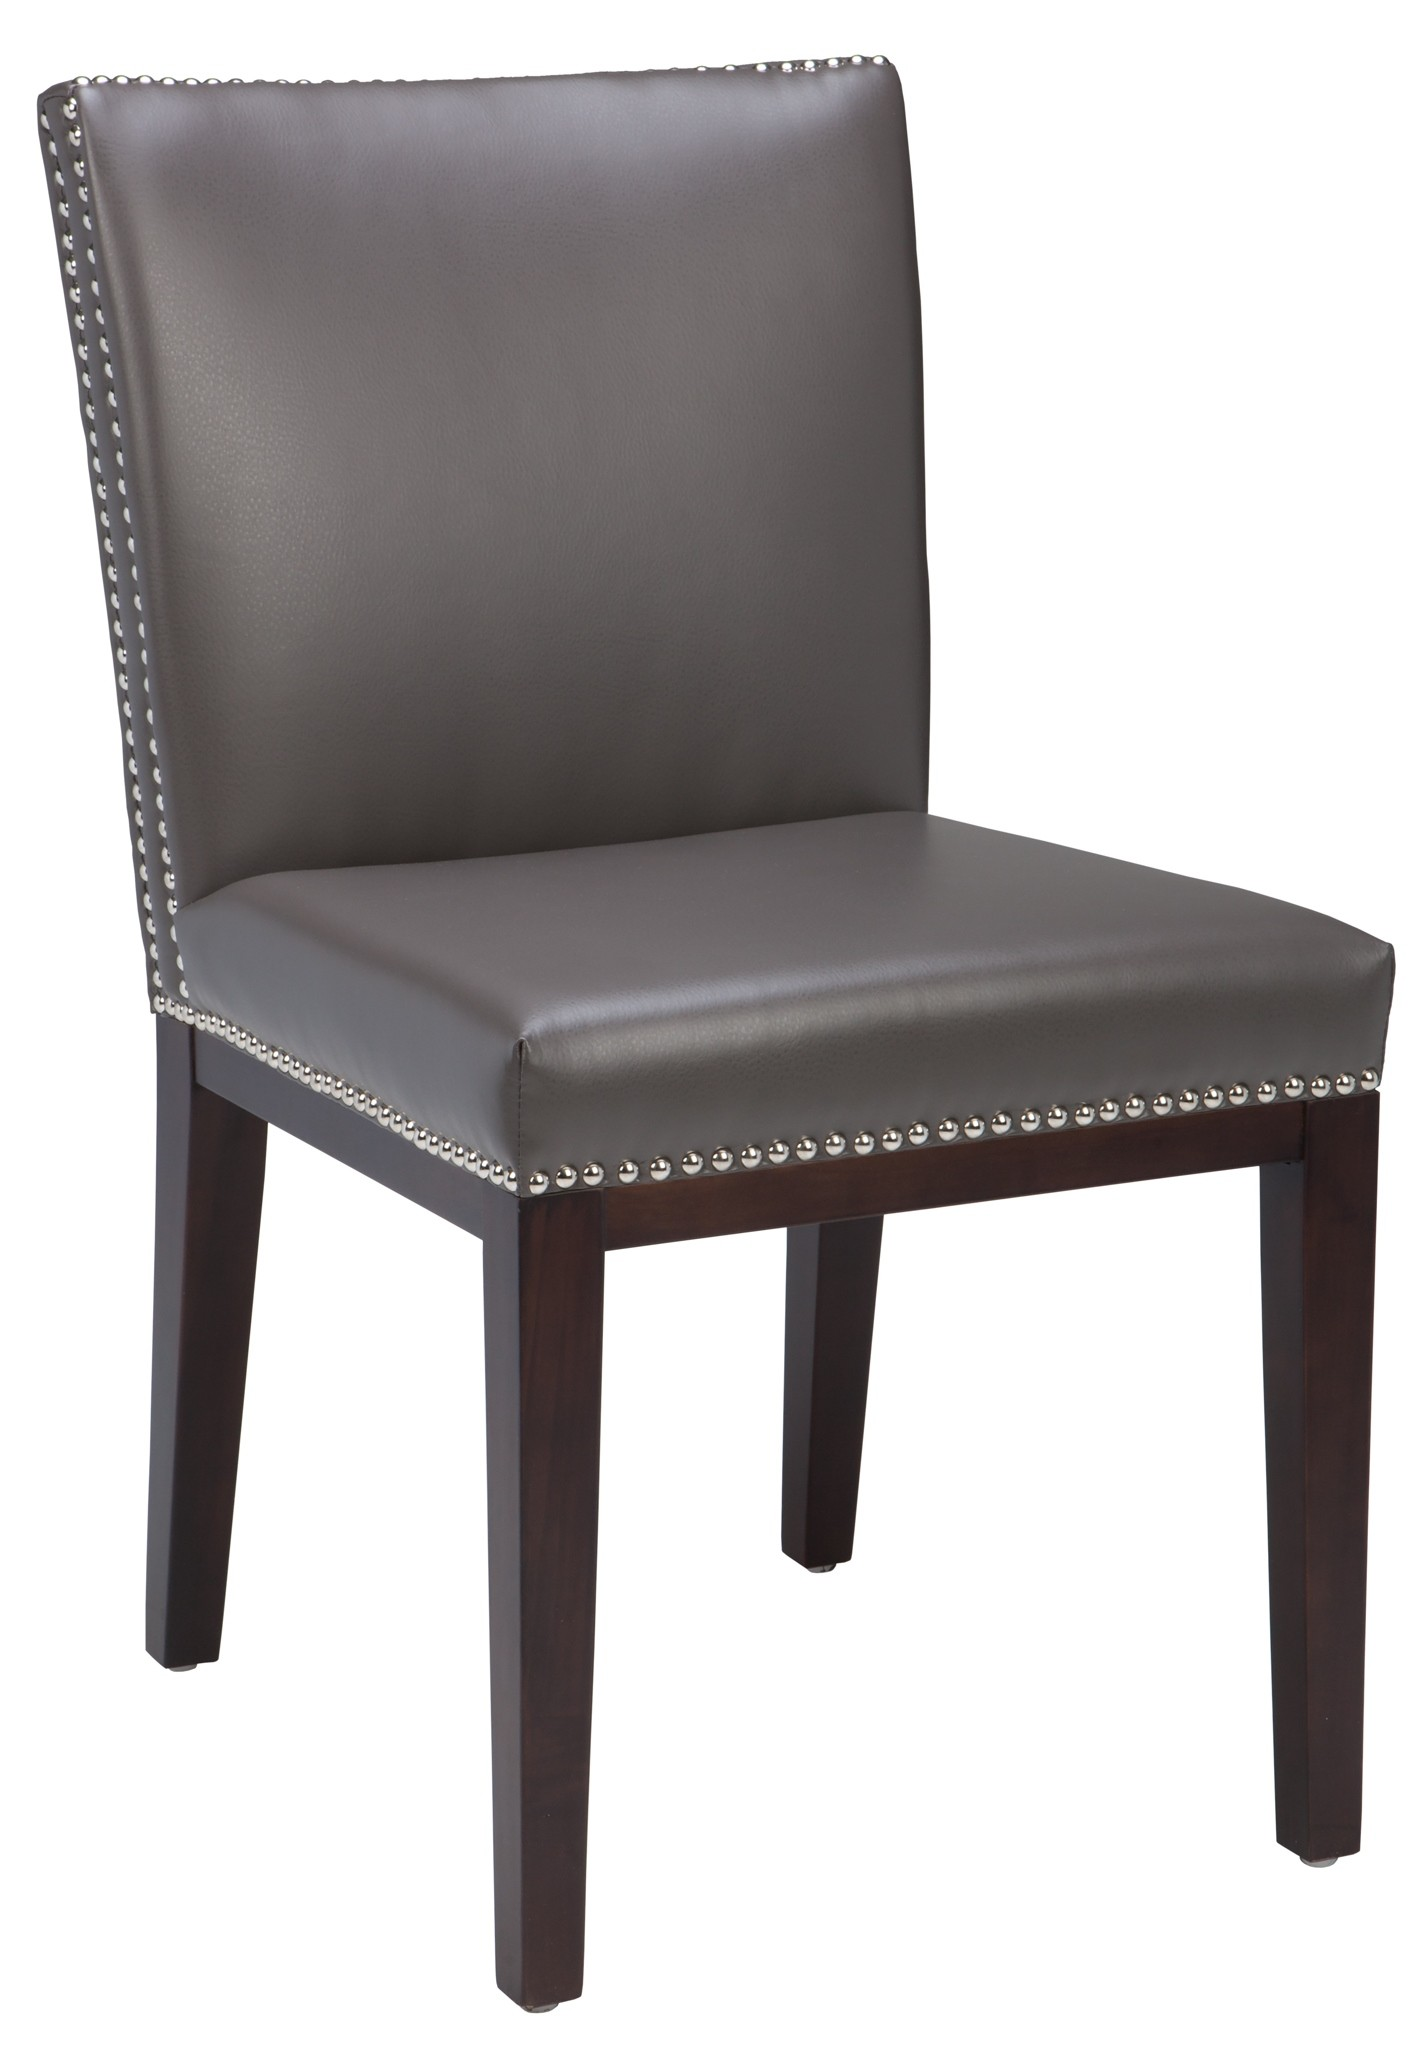 gray leather dining chairs cool for man cave vintage grey chair set of 2 from sunpan